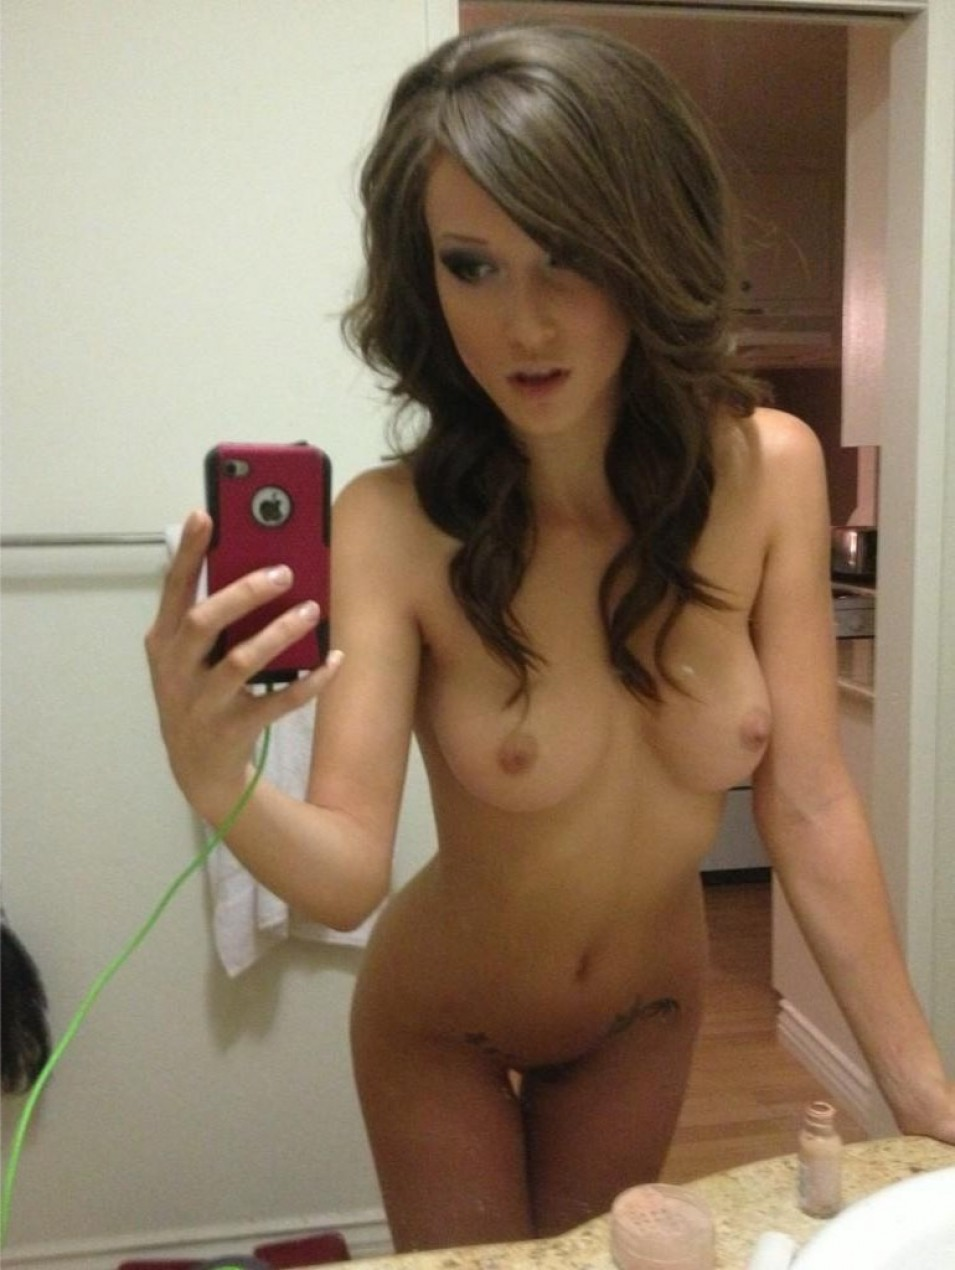 from Maison iphone topless teen pics